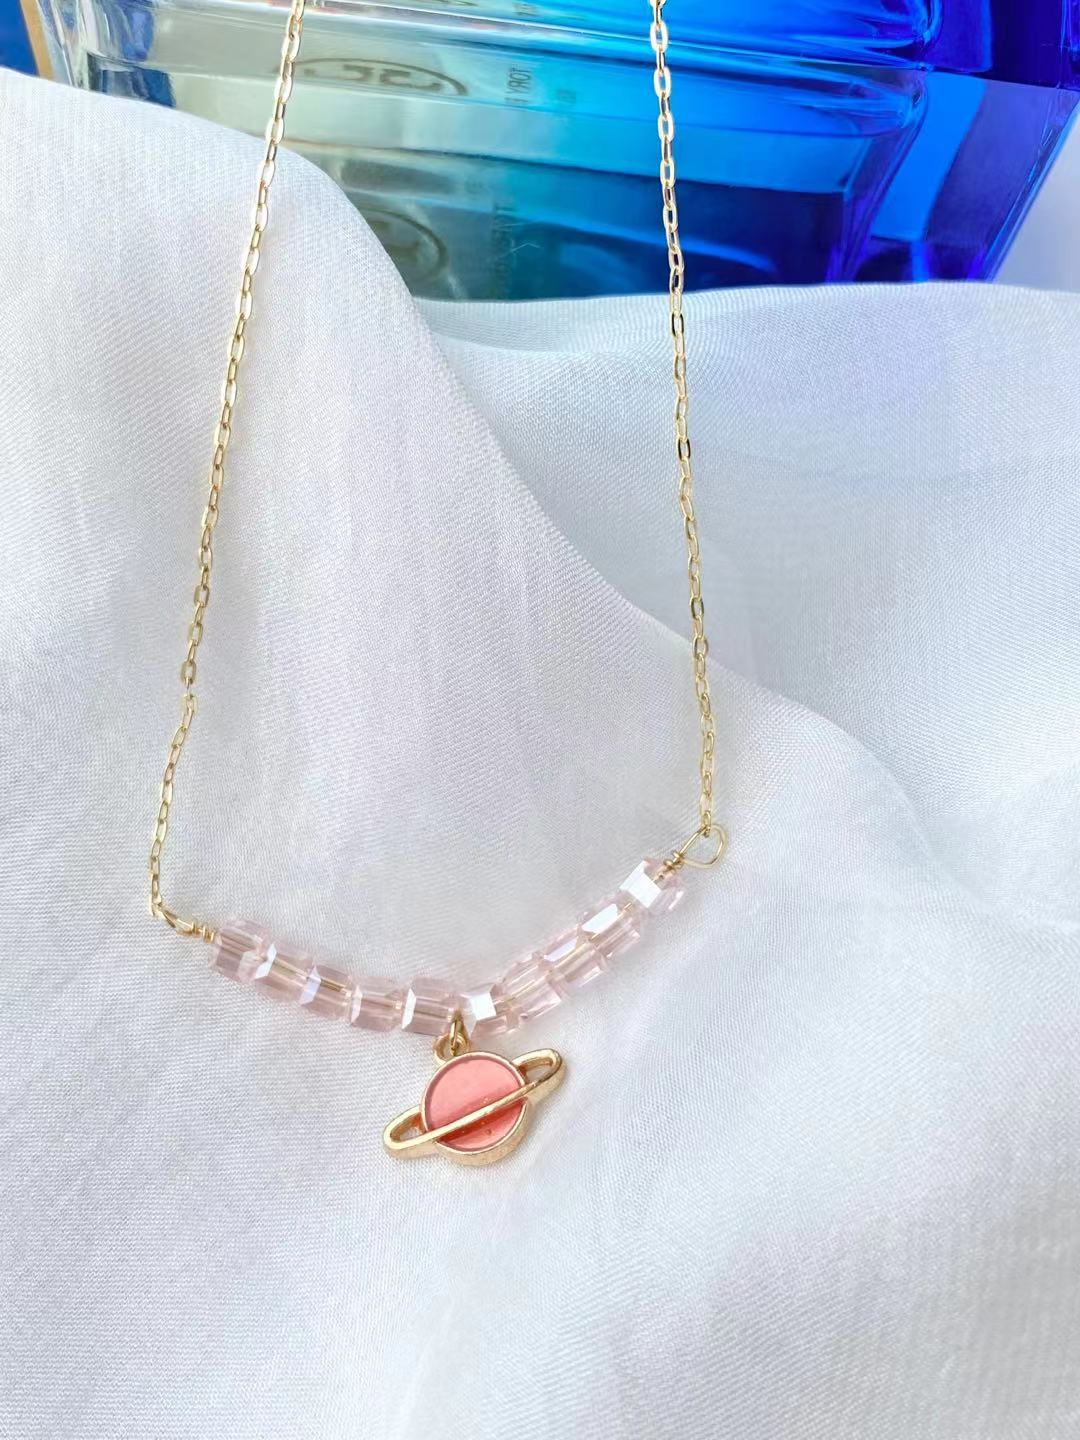 Cute Red Universe 14 k gold plated chain necklace for girls and women, handmade by SM trending store owner